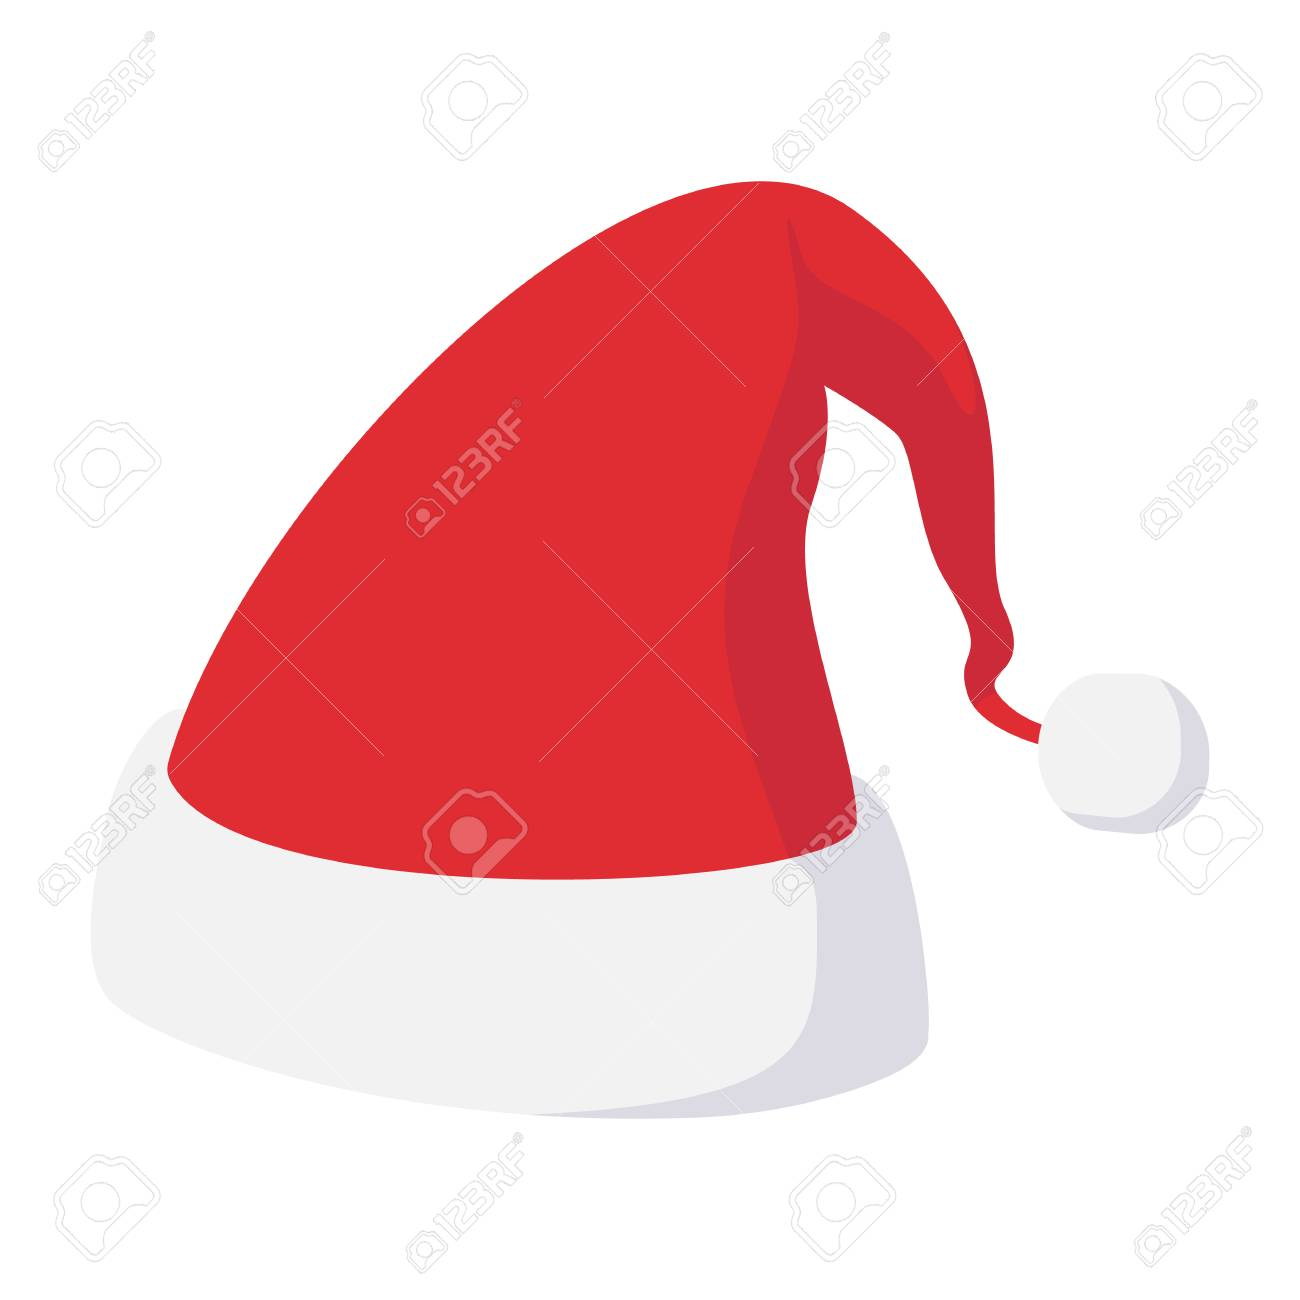 Christmas Hat Cartoon Icon Isolated On White Background Royalty Free Cliparts Vectors And Stock Illustration Image 50177755